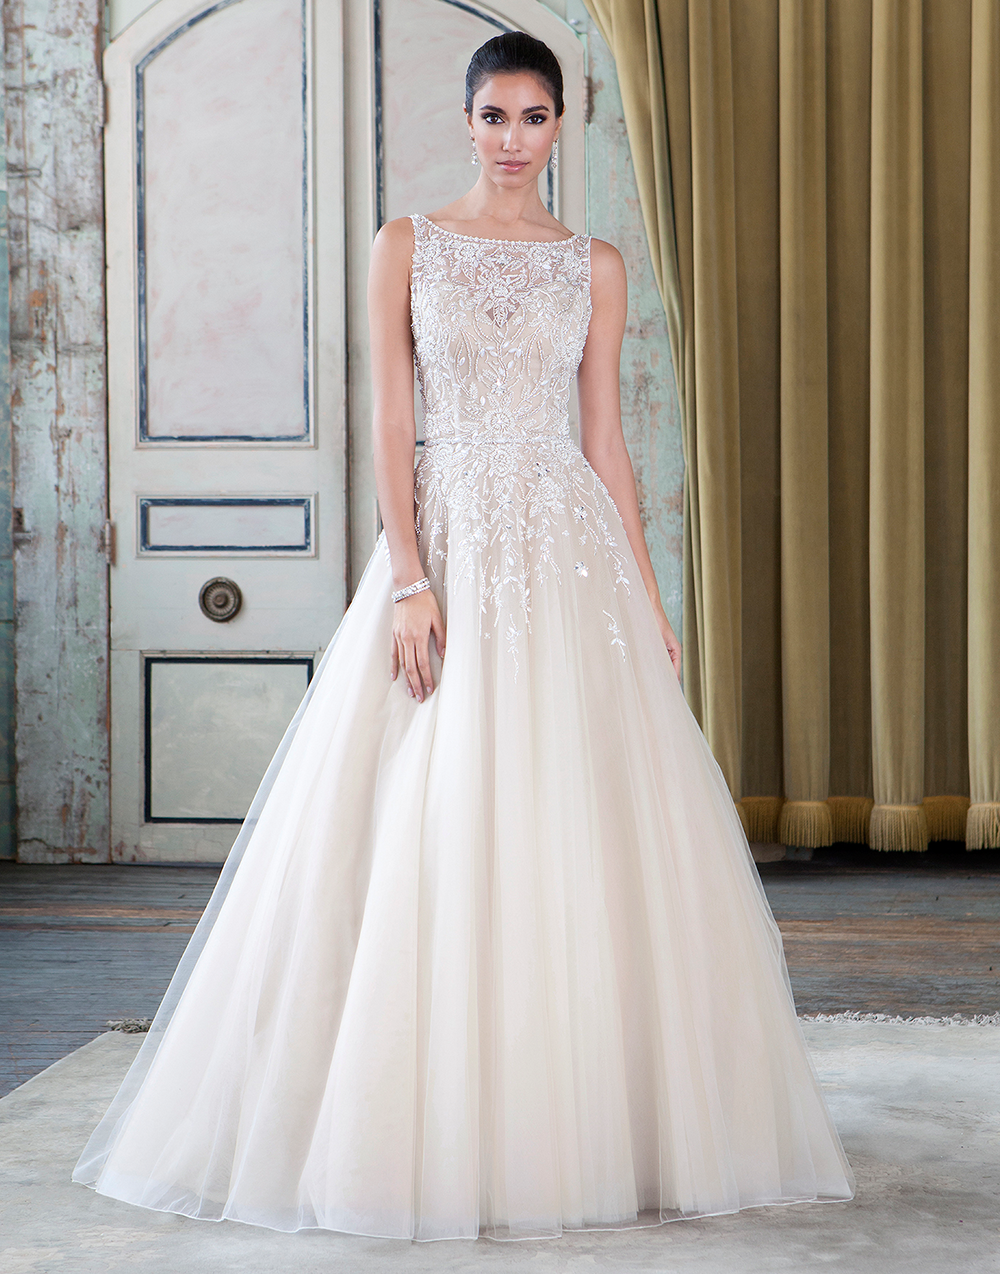 Justin alexander wedding dresses fairytale brides